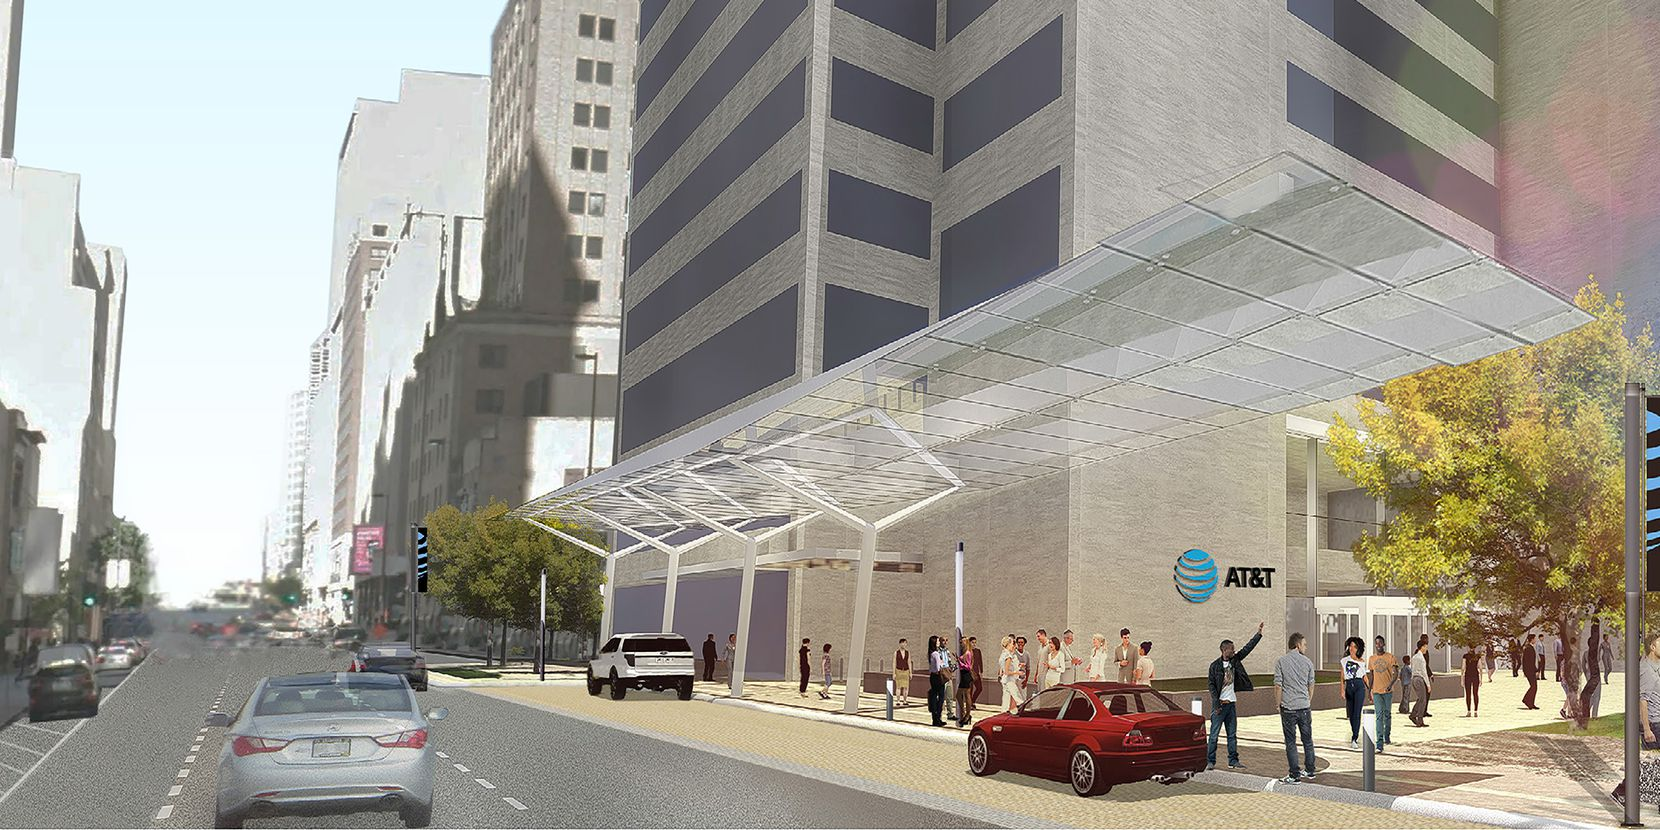 A new drop-off lane and canopy is planned along Commerce Street.